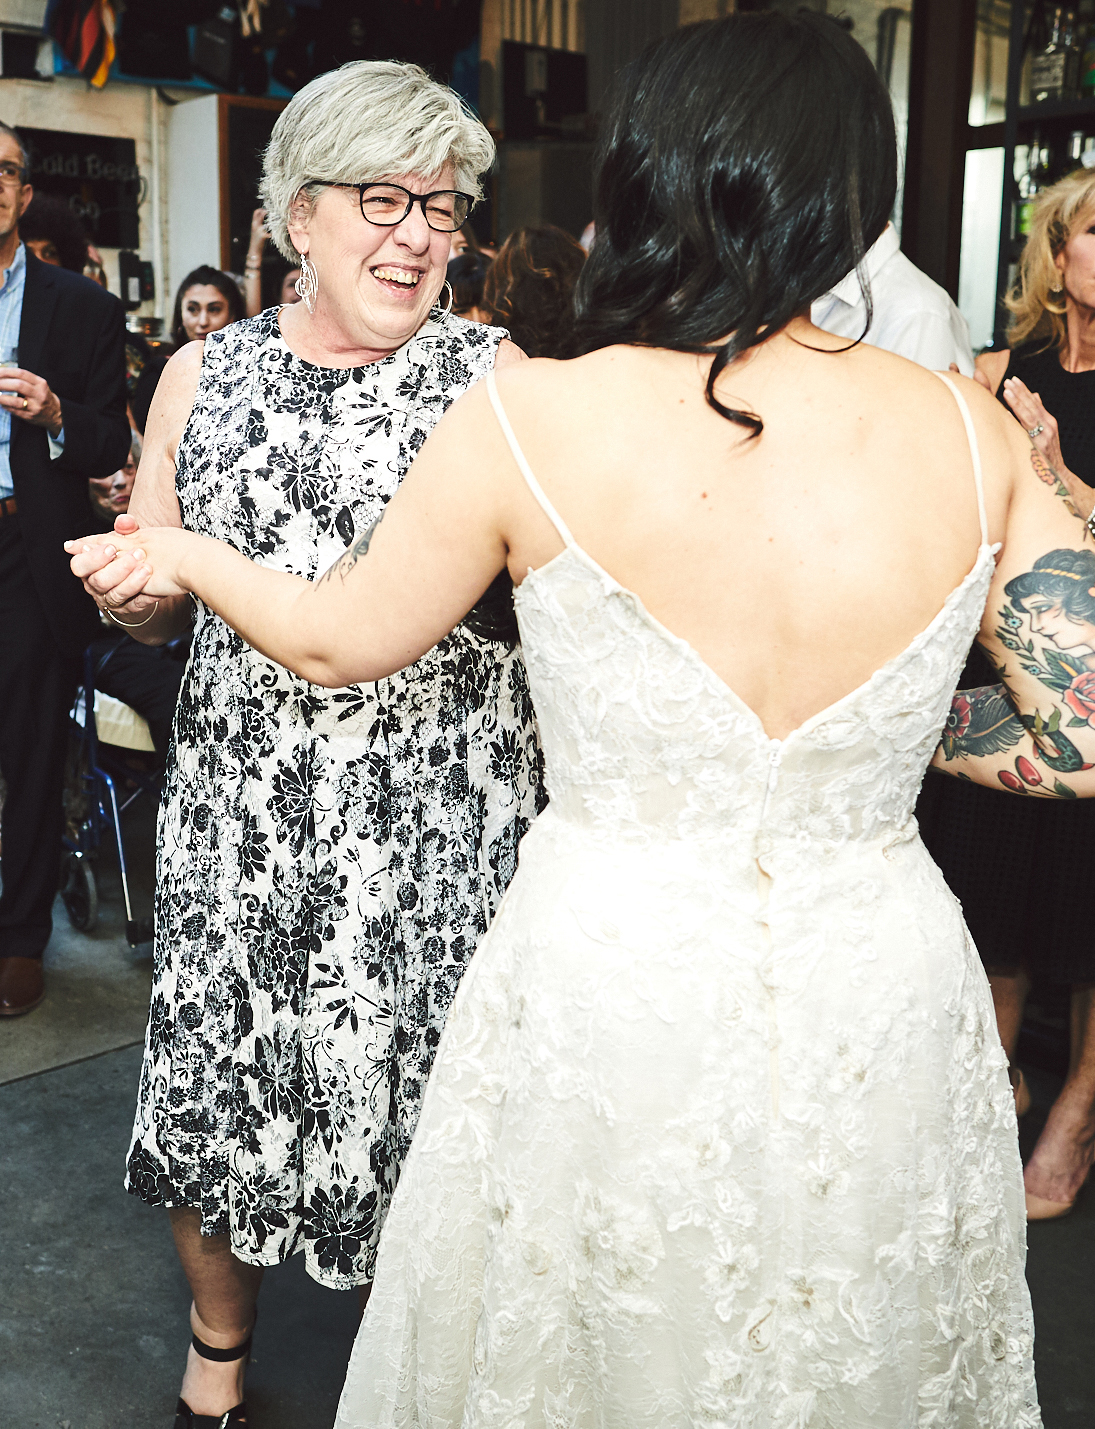 190518_SpringThreesBreweryWedding_By_BriJohnsonWeddings_0114.jpg